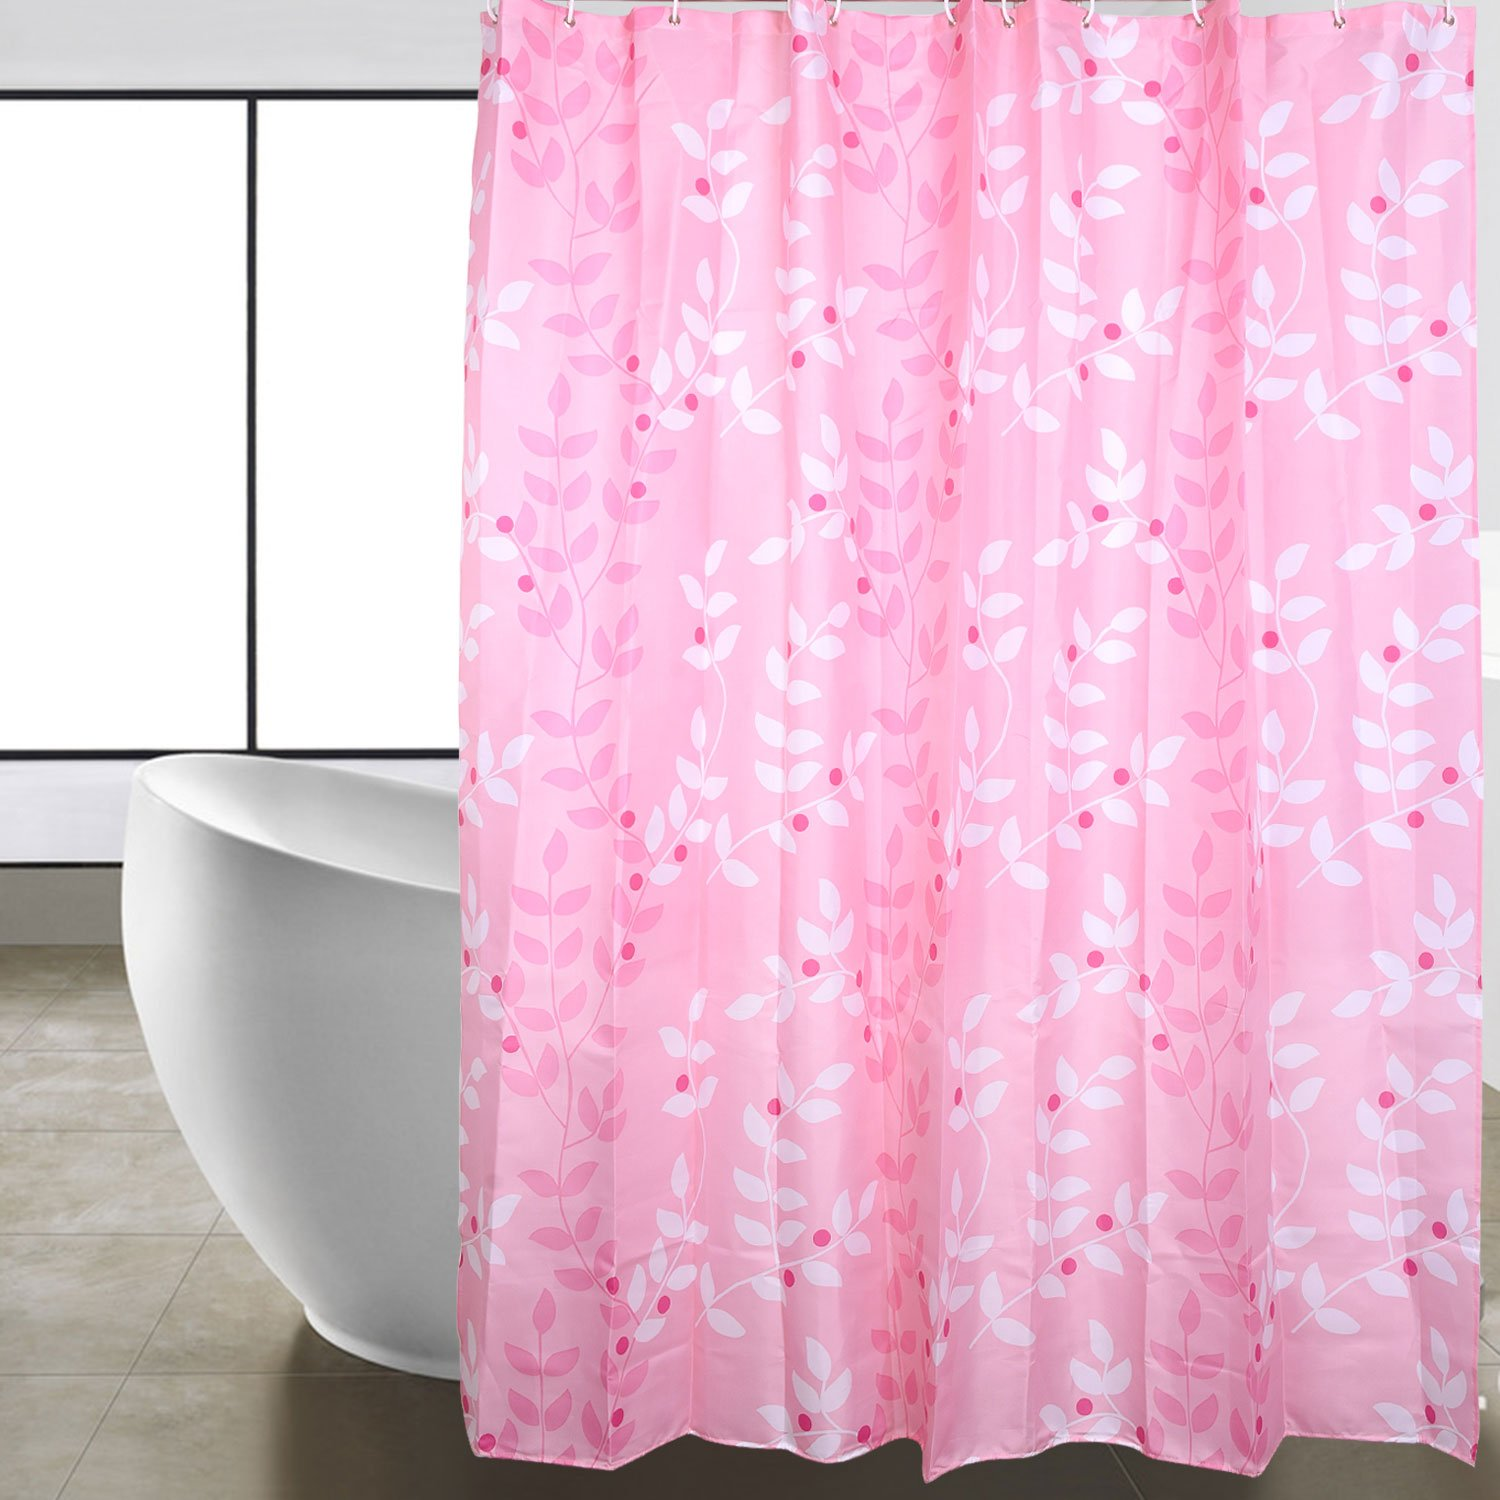 Amazon Purple Angel Shower Curtains Liner Curtain 240 X 200 Cm Anti Mould Bacterial Waterproof Bathroom With